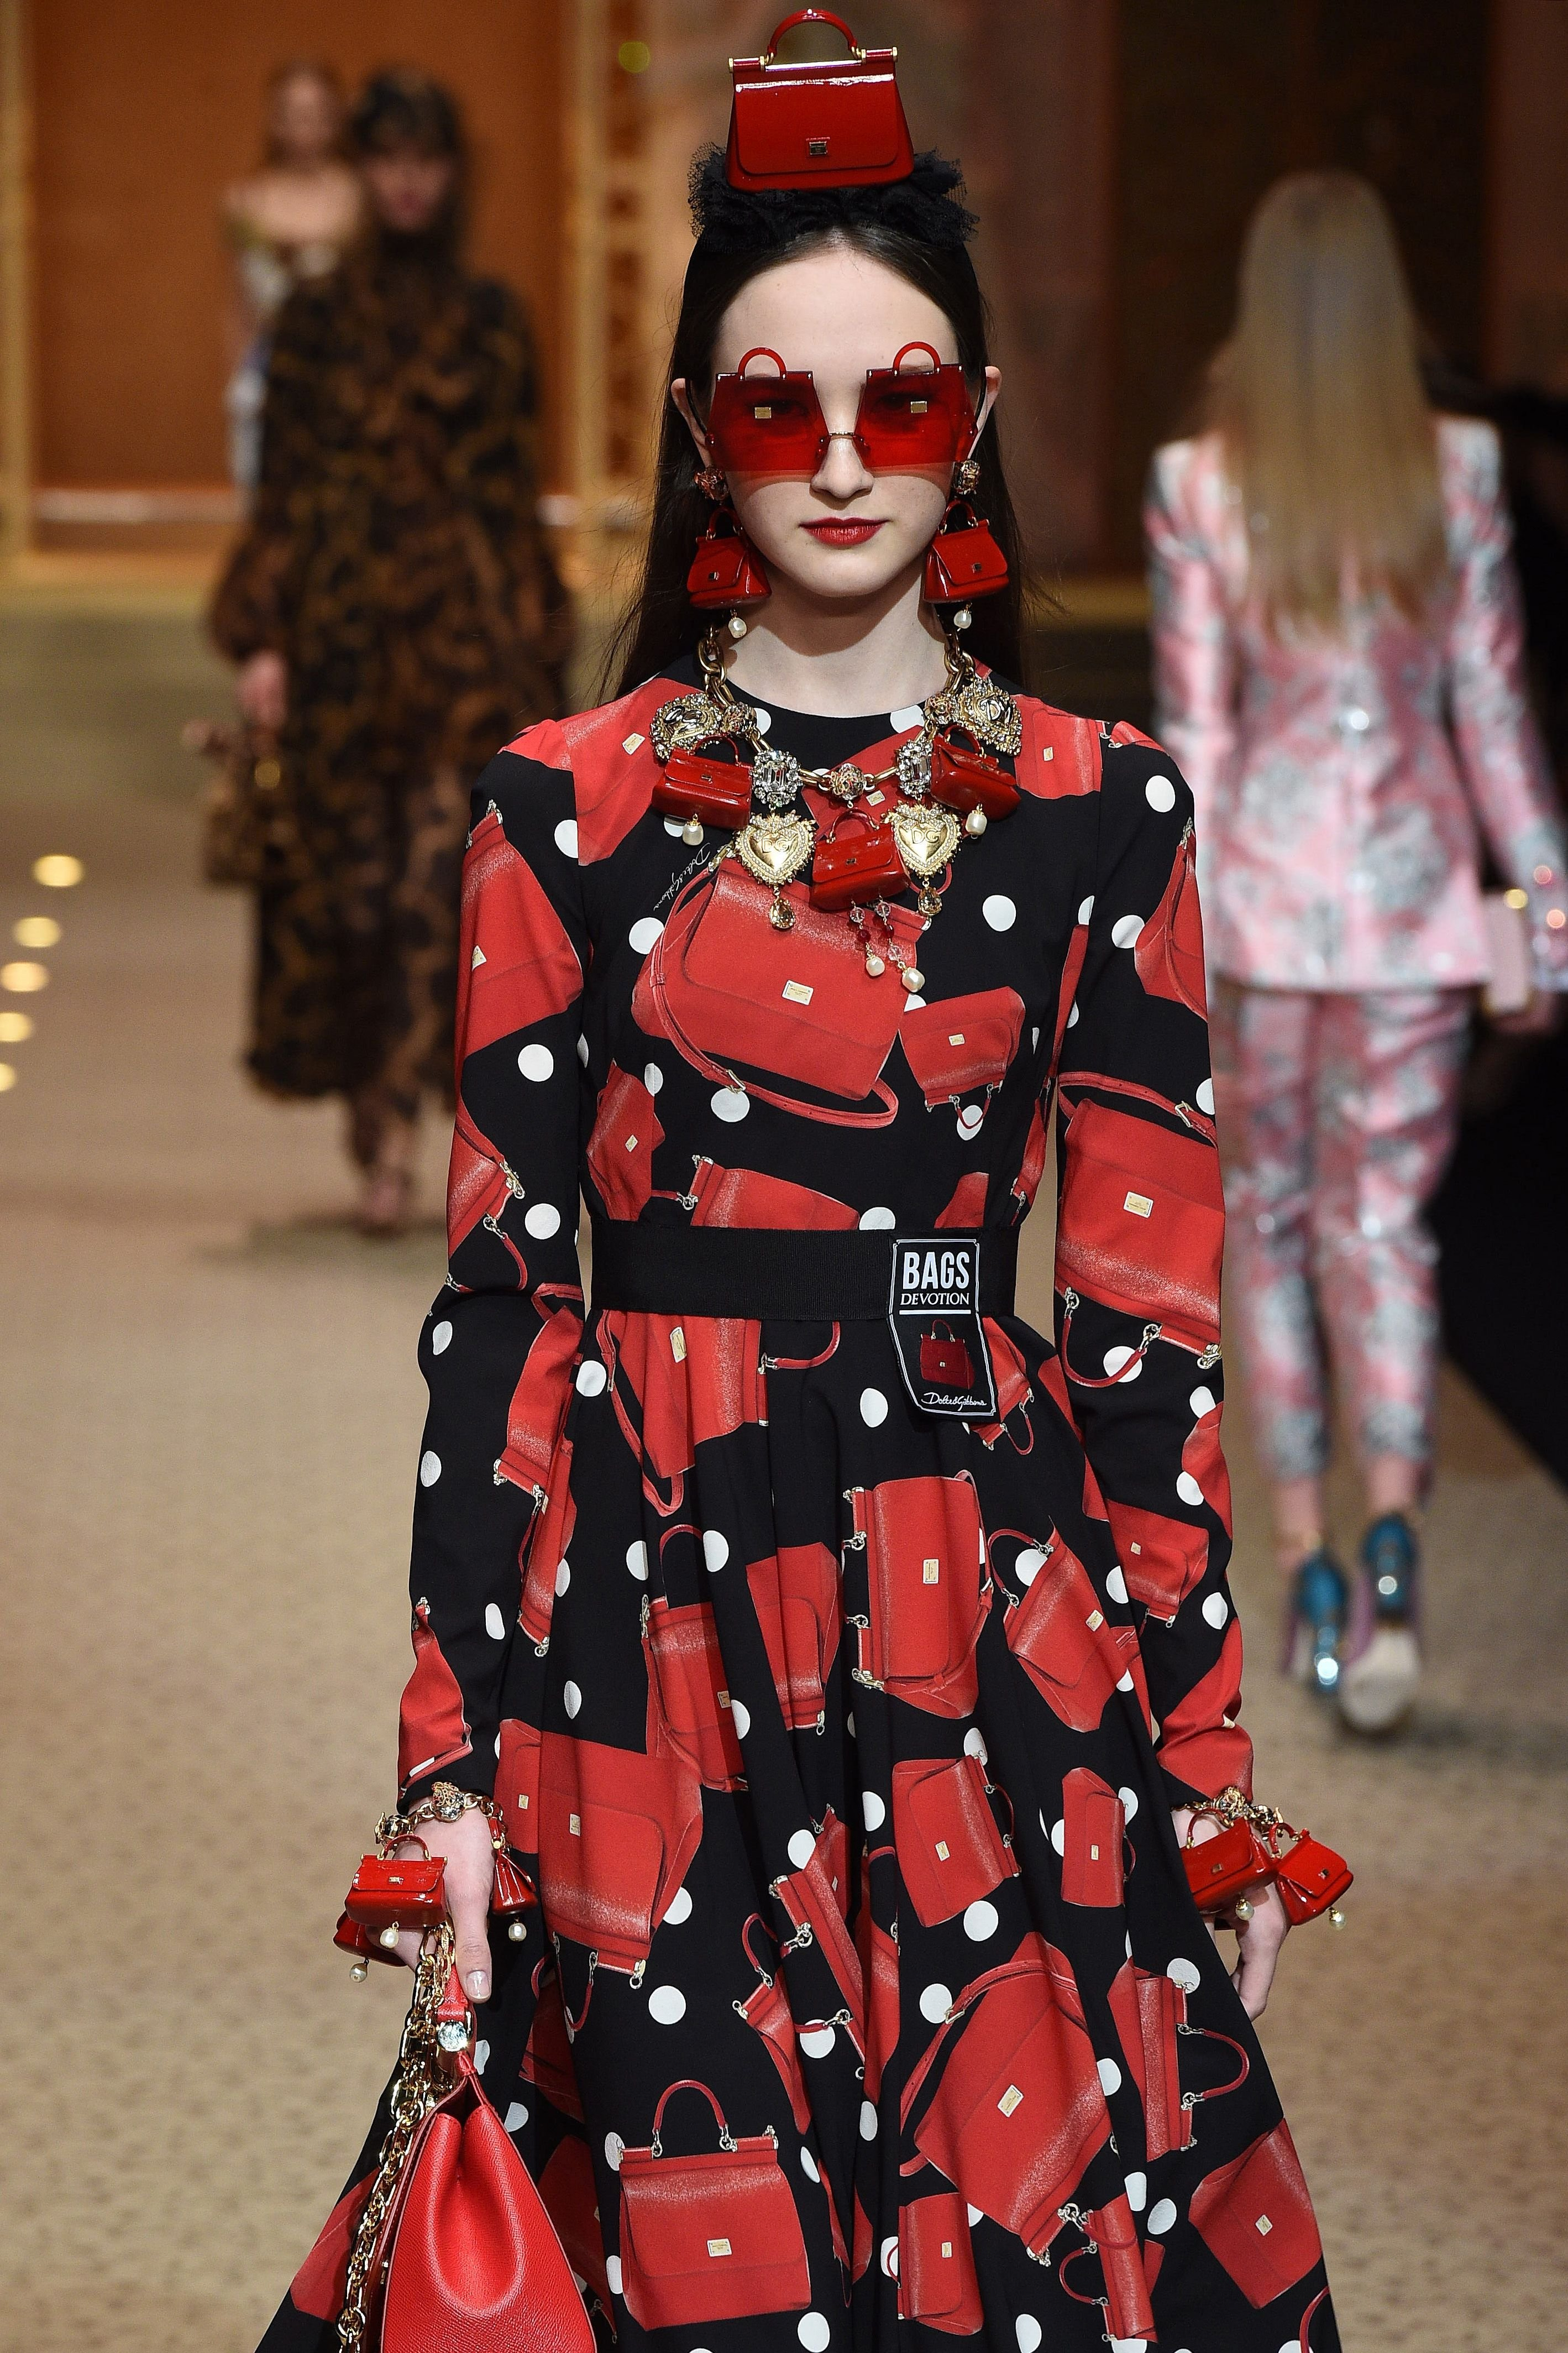 A Model wearing an outfit from the women's ready to wear collections, autumn winter 2018 2019, original creation, during the Fashion Week in Milan, Italy from the house of Dolce and Gabbana//Z-PIXEL-FORMULA_A_288/Credit:Pixelformula/SIPA/1802252327, Image: 364346560, License: Rights-managed, Restrictions: , Model Release: no, Credit line: Profimedia, TEMP Sipa Press